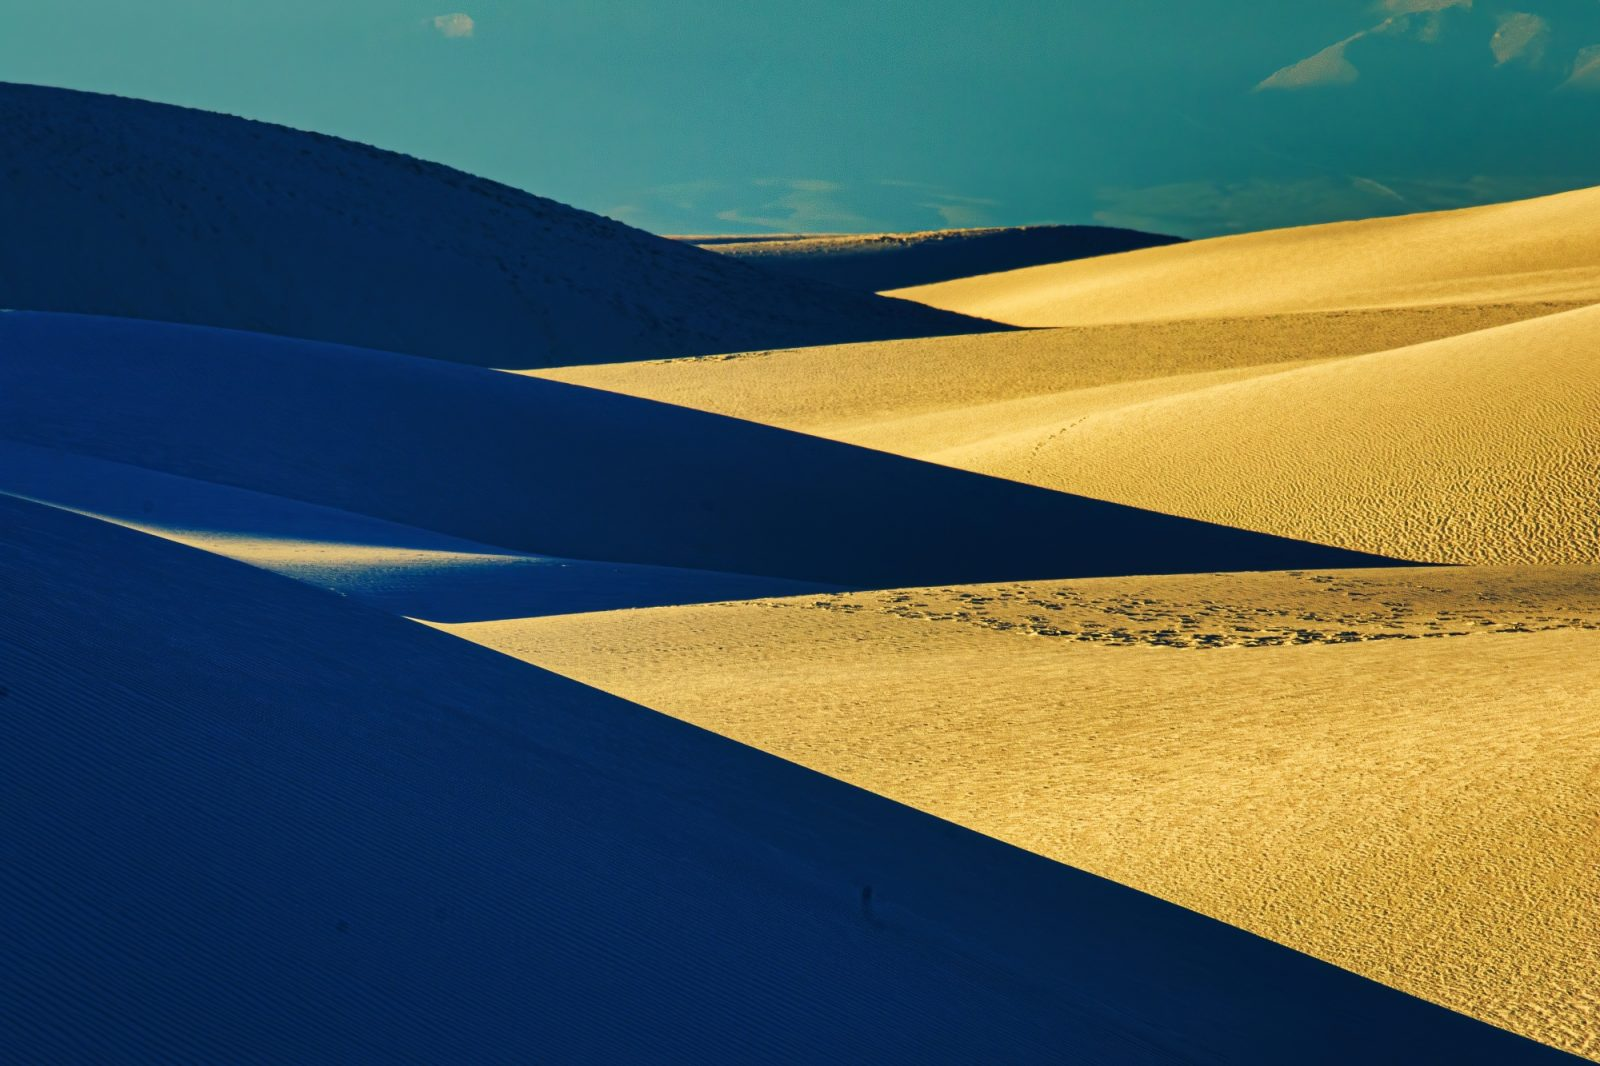 Sand desert in contrast to complementary colors